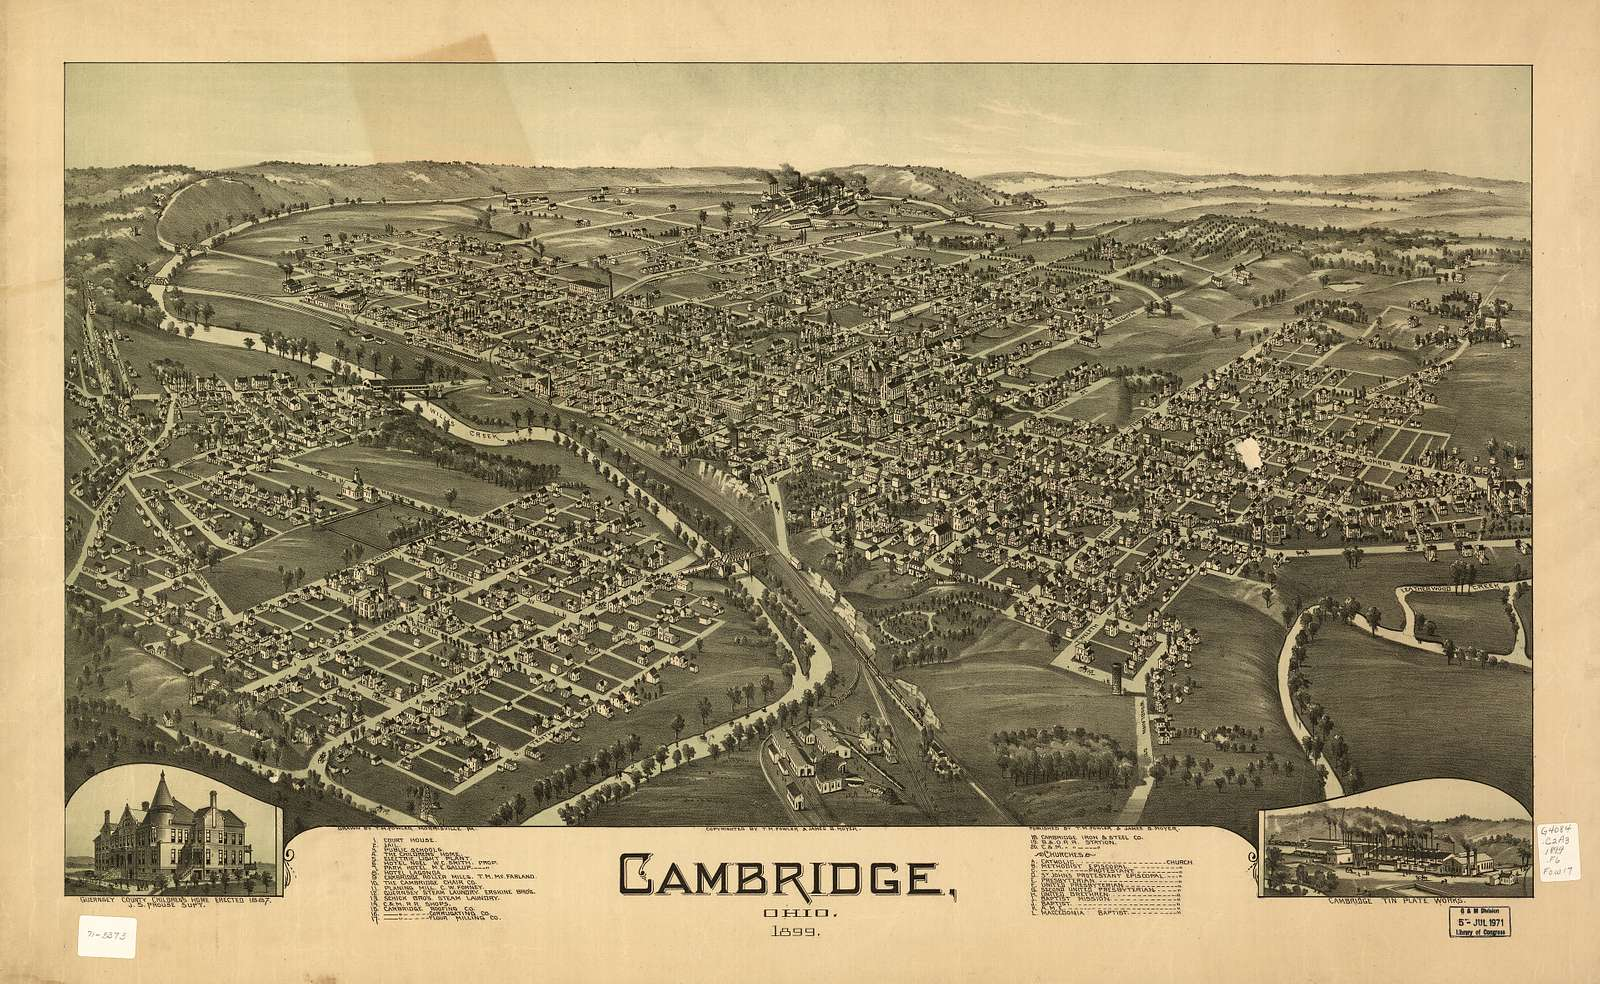 Cambridge, Ohio 1899 /